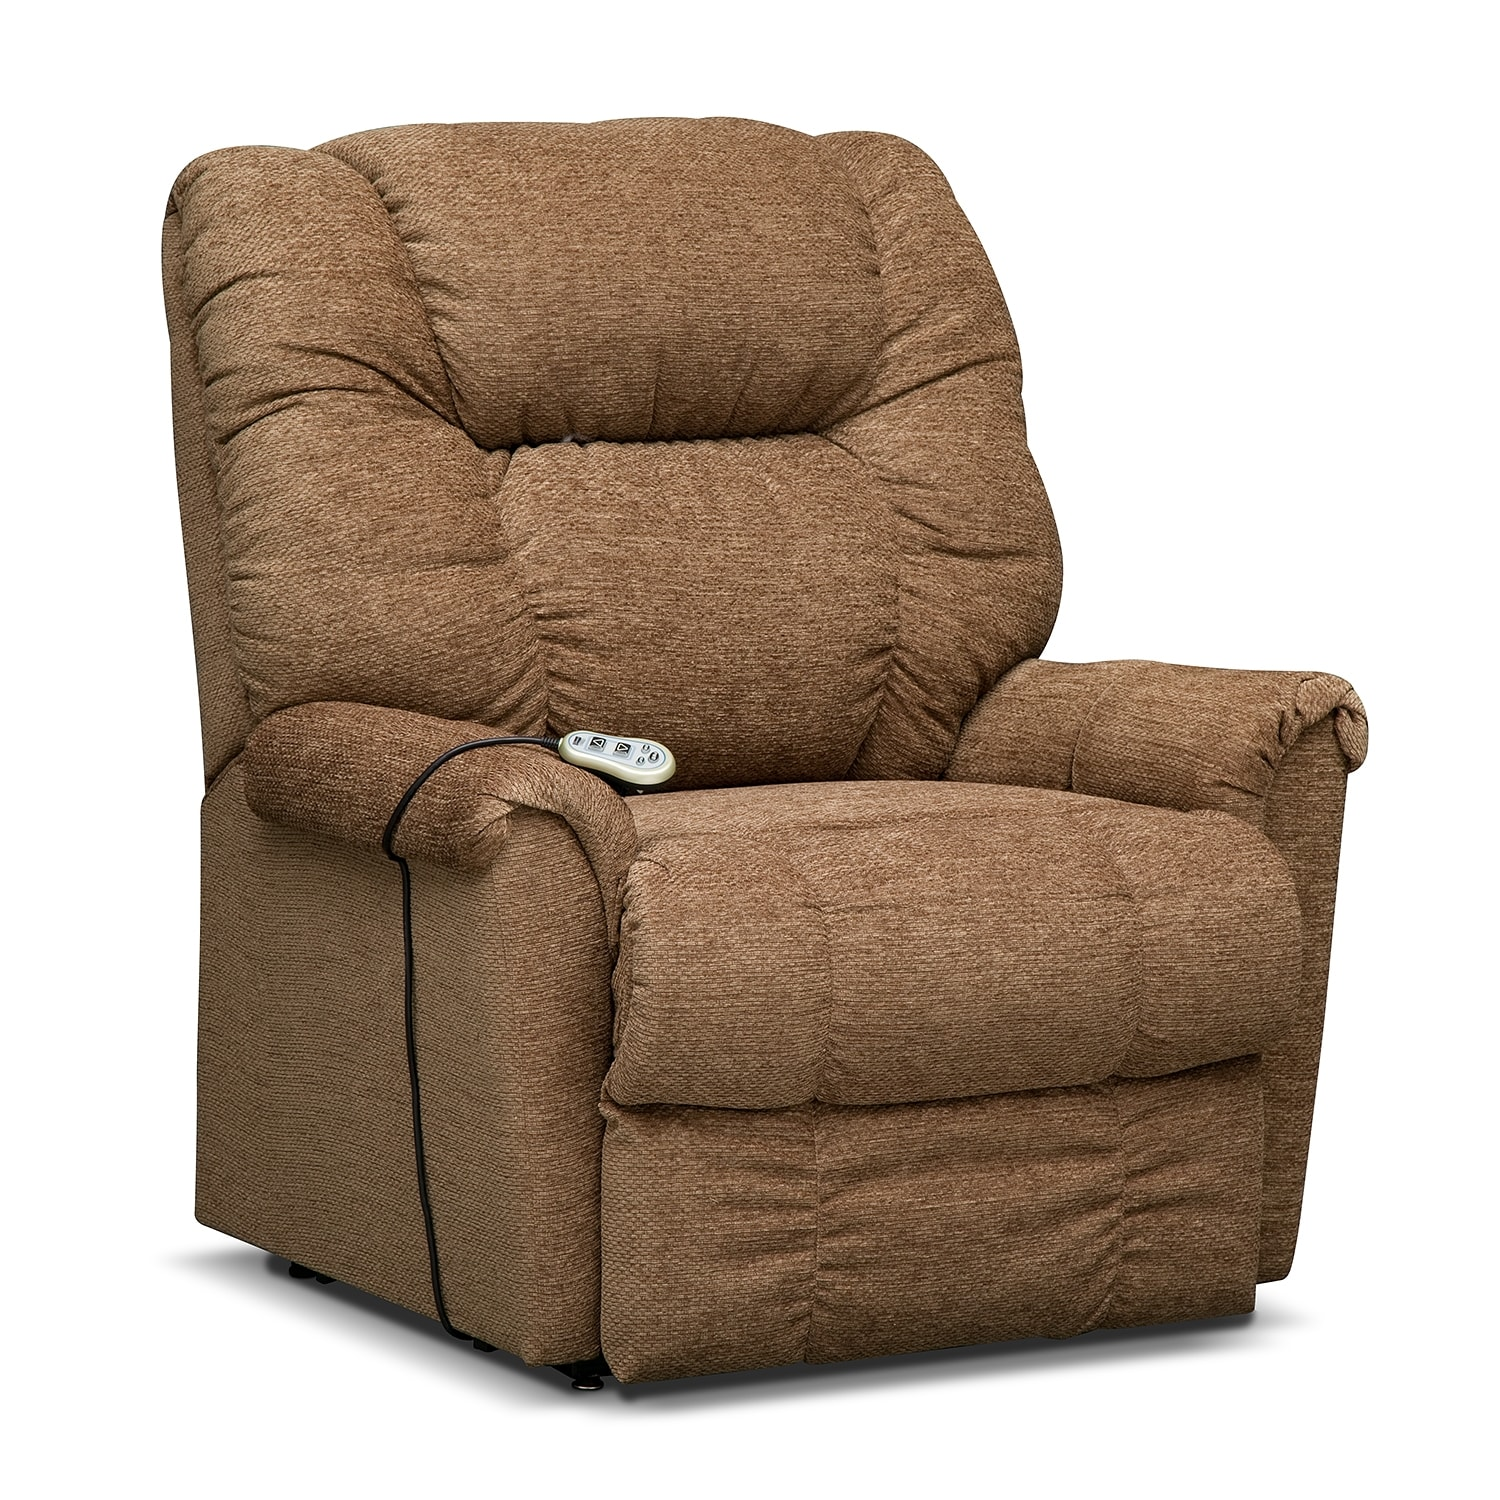 Living Room Furniture - Oberlin Large Power Lift Massage Chair